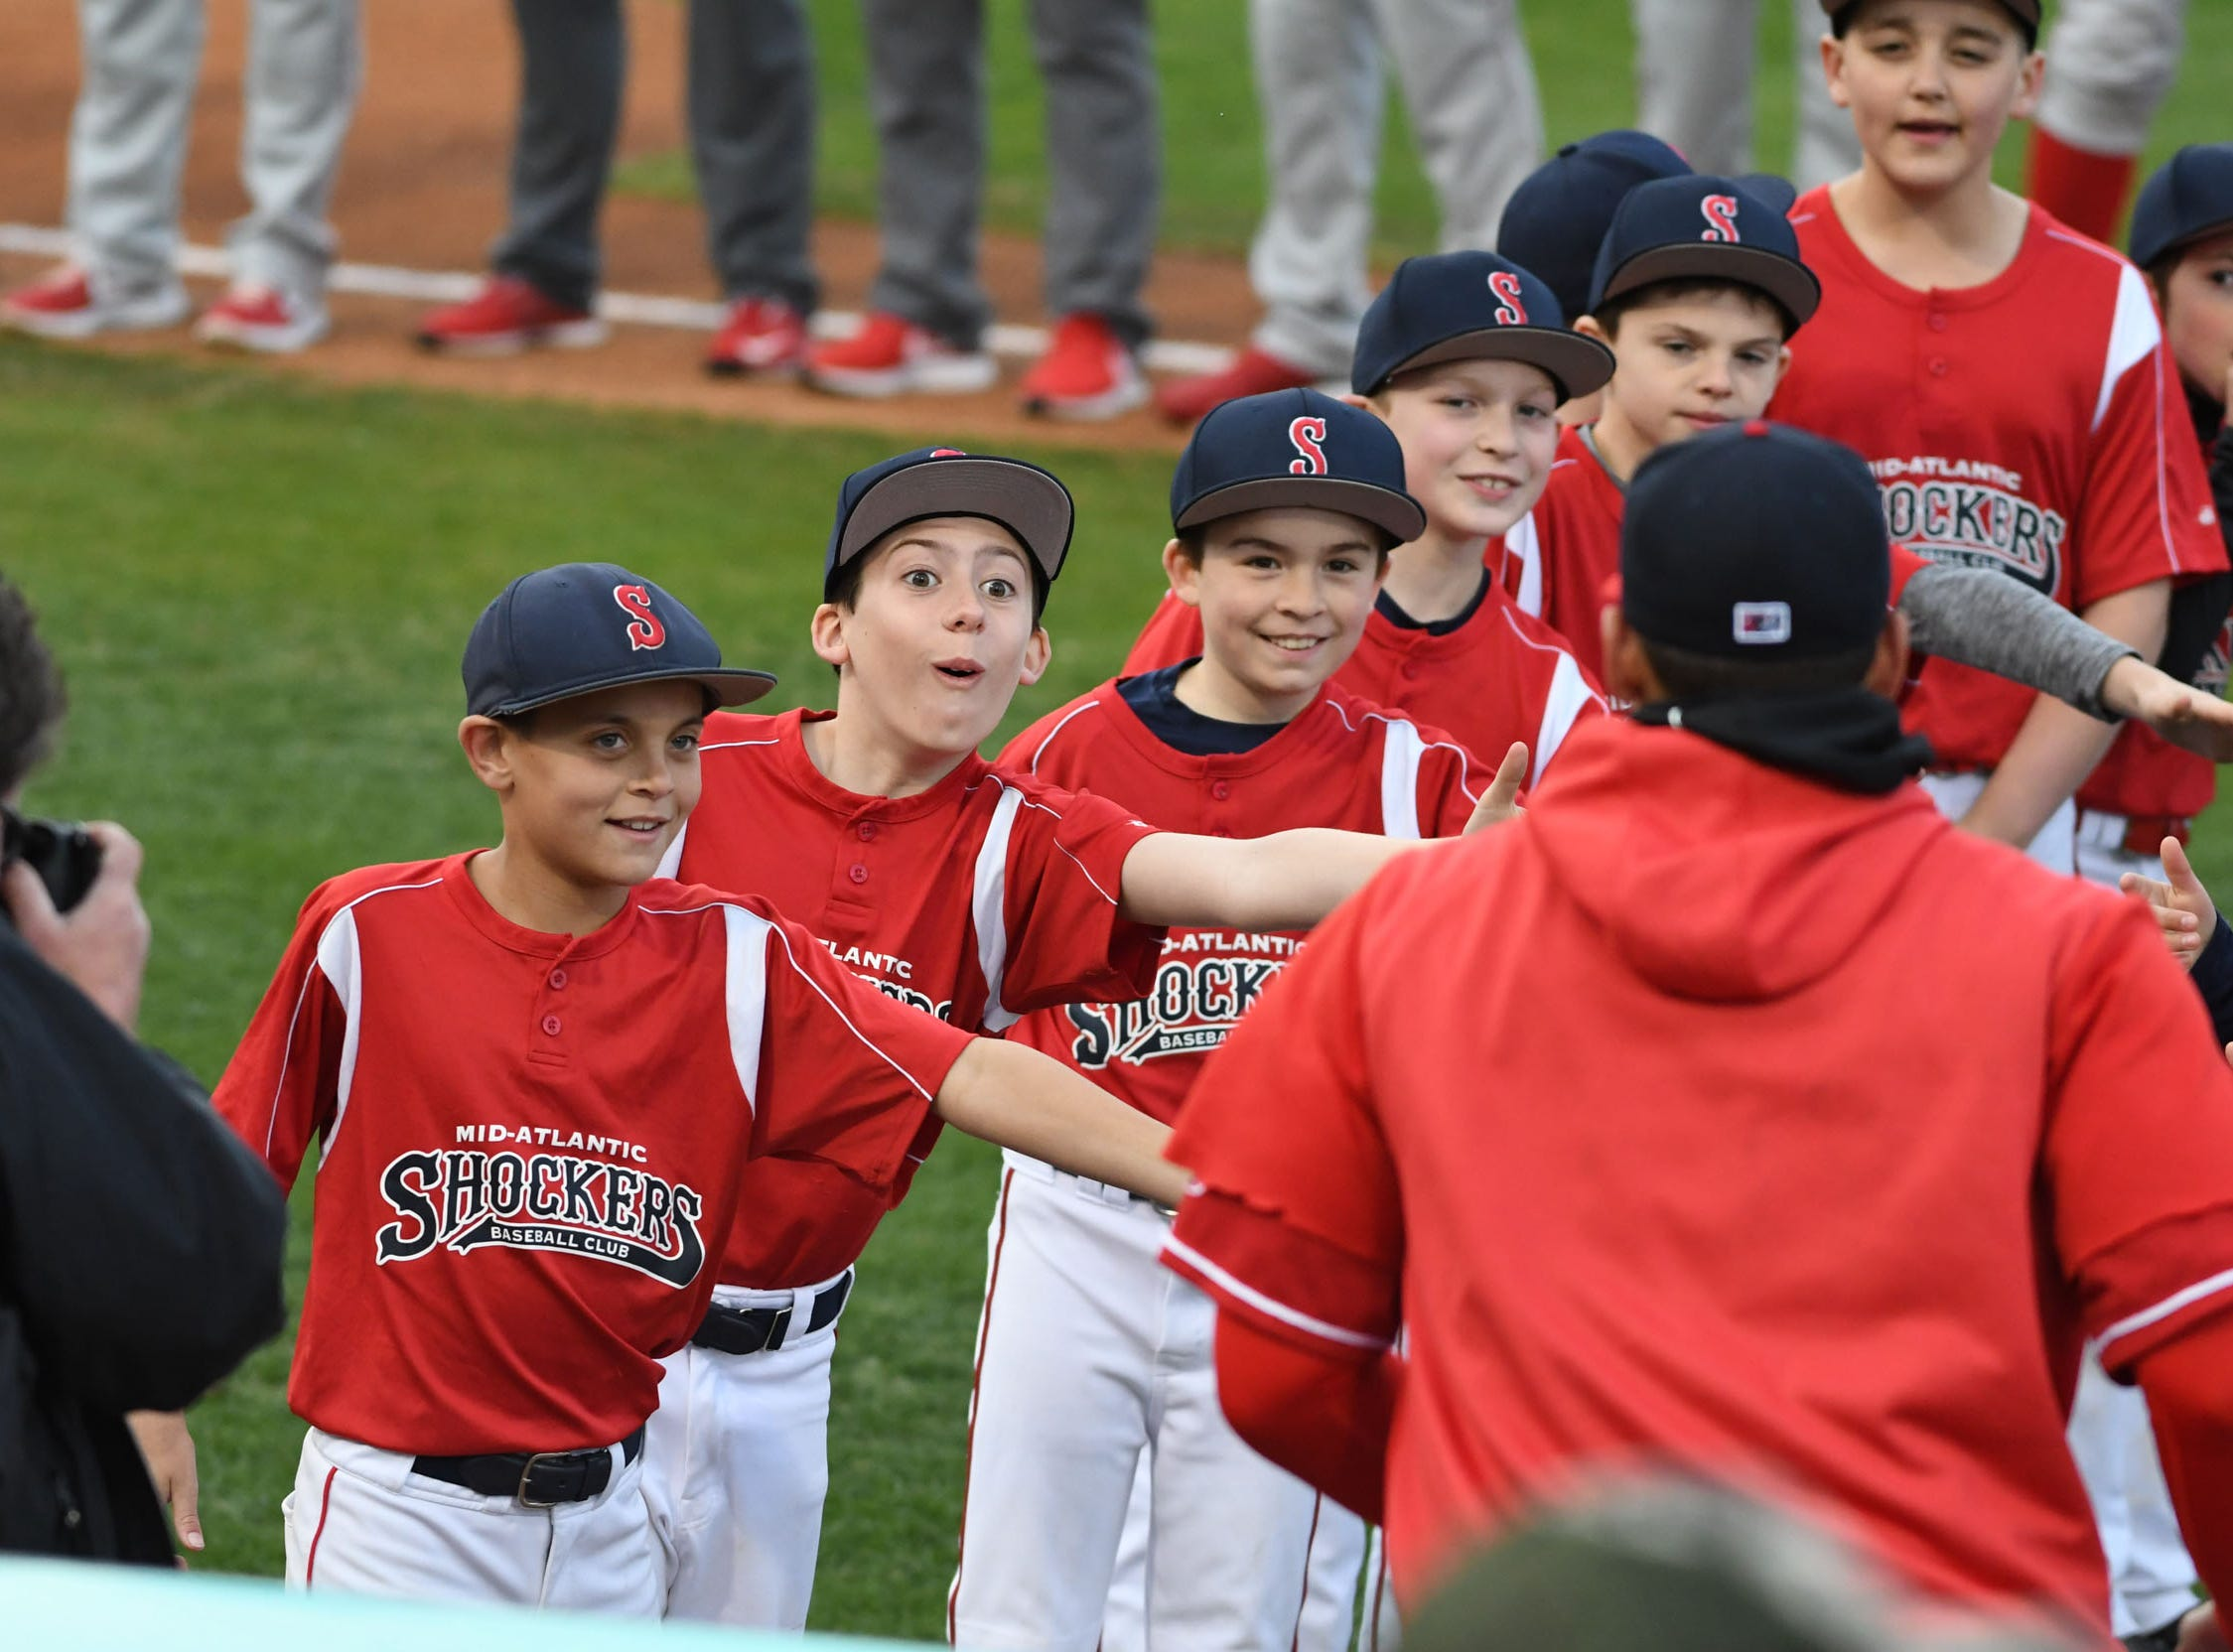 The Mid-Atlantic Shockers Baseball Club helped in welcoming the players during Opening Night at the Shorebirds on Thursday, April 11, 2019.